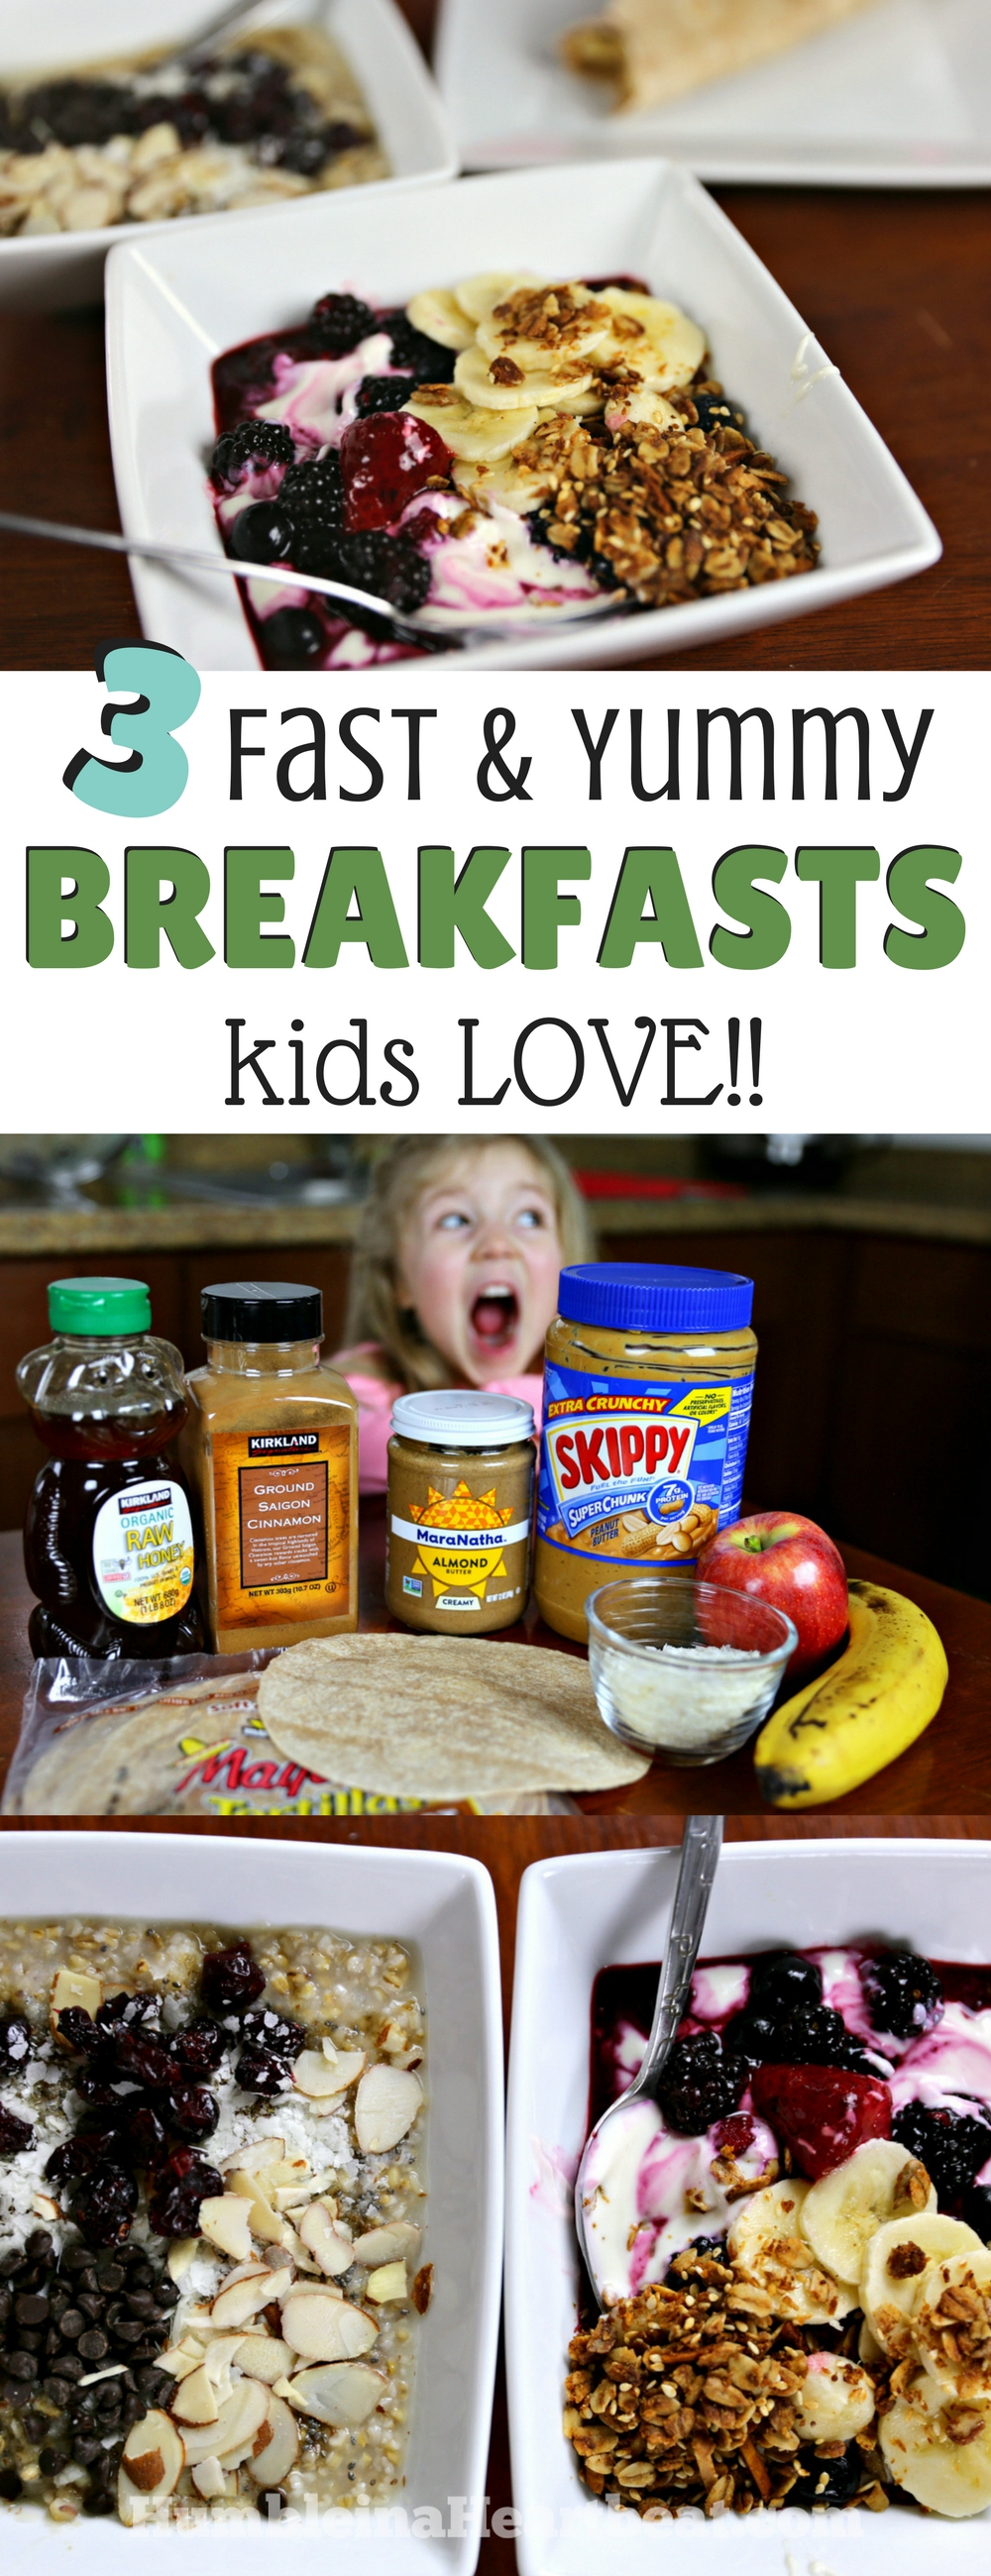 You can definitely eat nutritious breakfasts without spending tons of time in the kitchen. Check out these 3 frugal, easy, and totally yummy breakfast options that kids absolutely LOVE! #easybreakfasts #feedingkids #quickbreakfasts